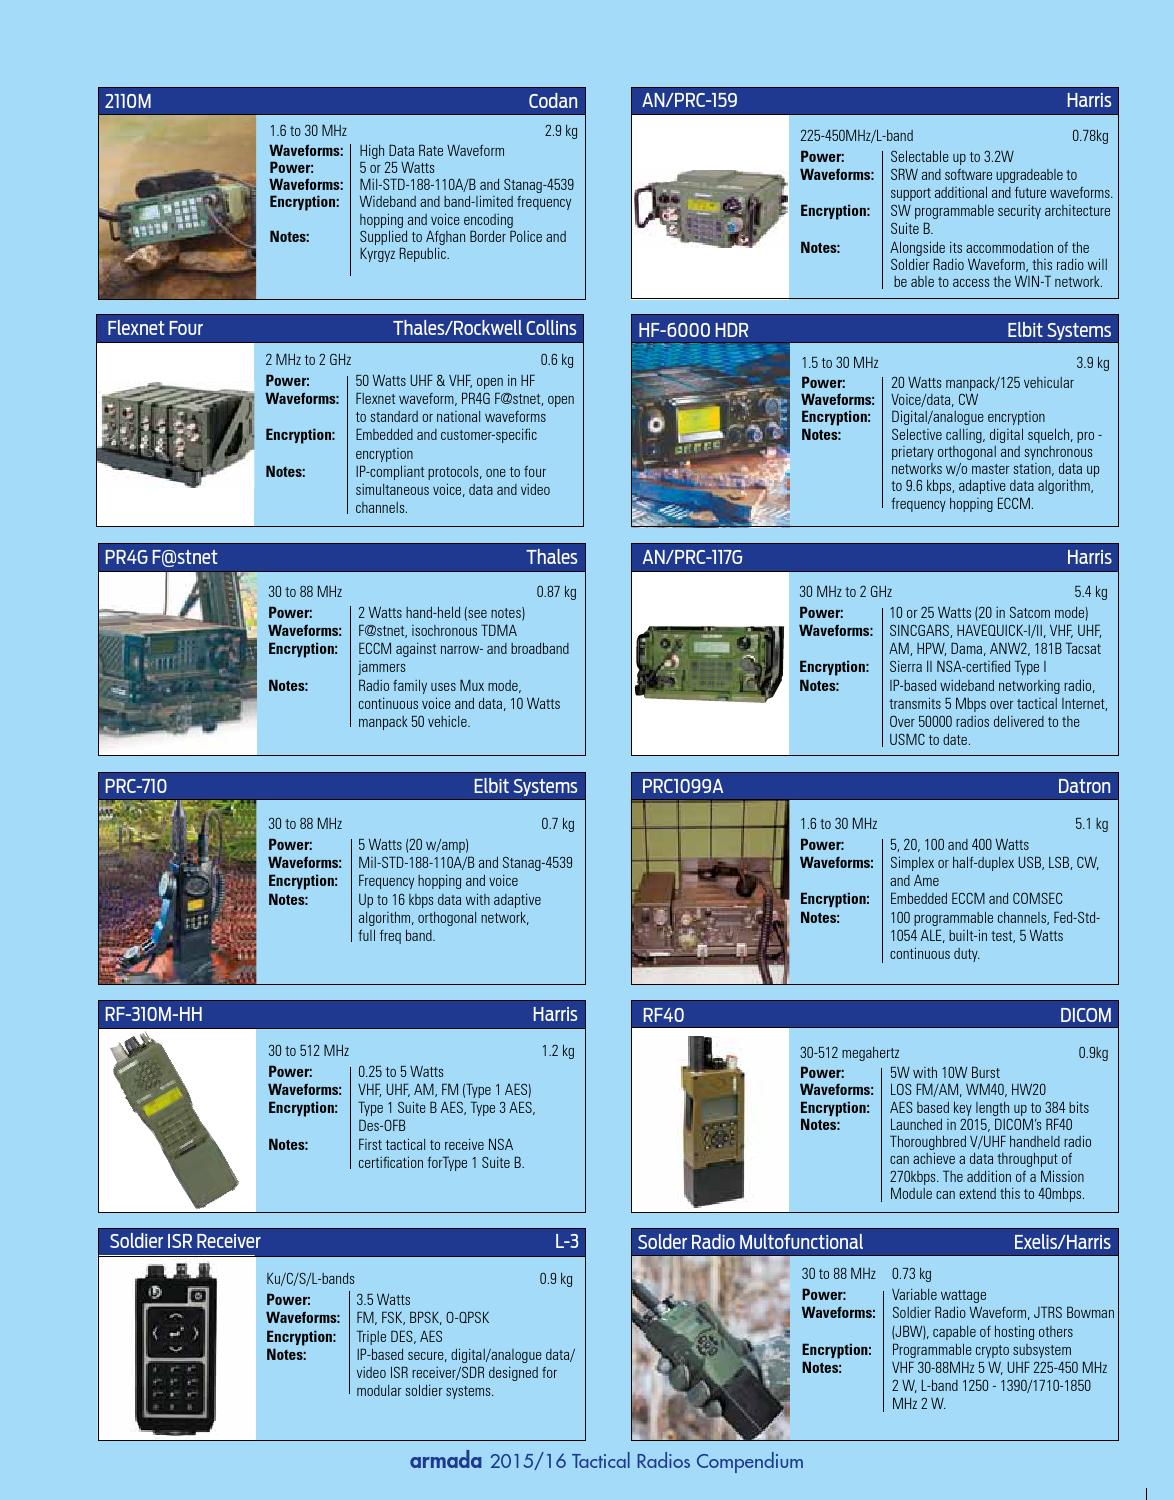 Tactical radios compendium 2015 by armada international asian tactical radios compendium 2015 by armada international asian military review issuu 1betcityfo Gallery